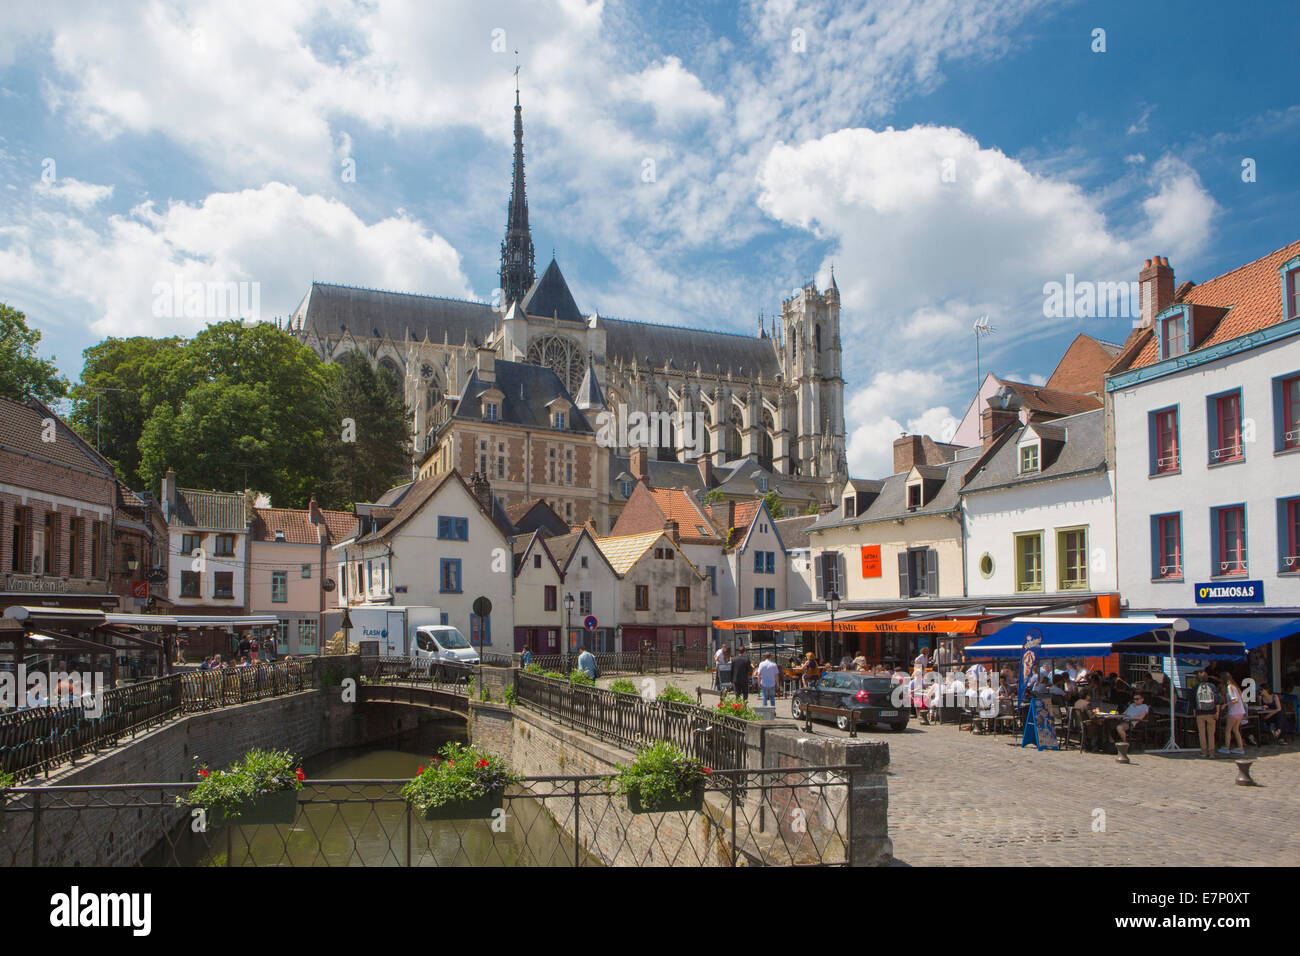 world heritage, Amiens, France, Europe, architecture, cathedral, city, history, out doors, restaurant, terrace, - Stock Image